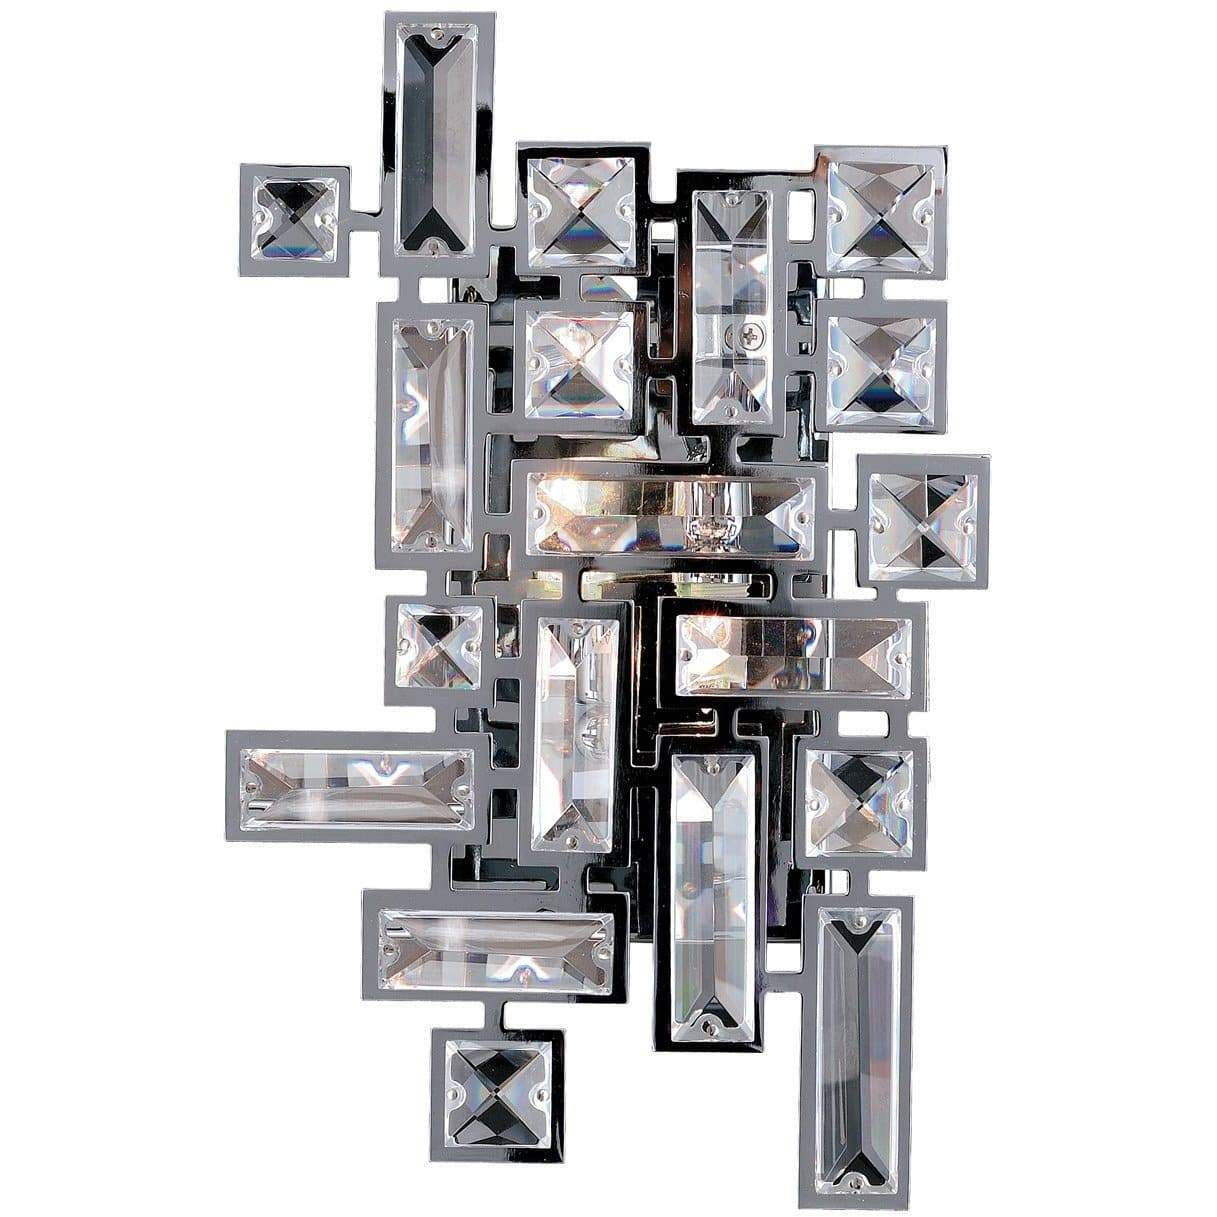 Allegri by Kalco Lighting Wall Sconces Chrome / Firenze Clear Vermeer 2 Light Wall Bracket From Allegri by Kalco Lighting 11191